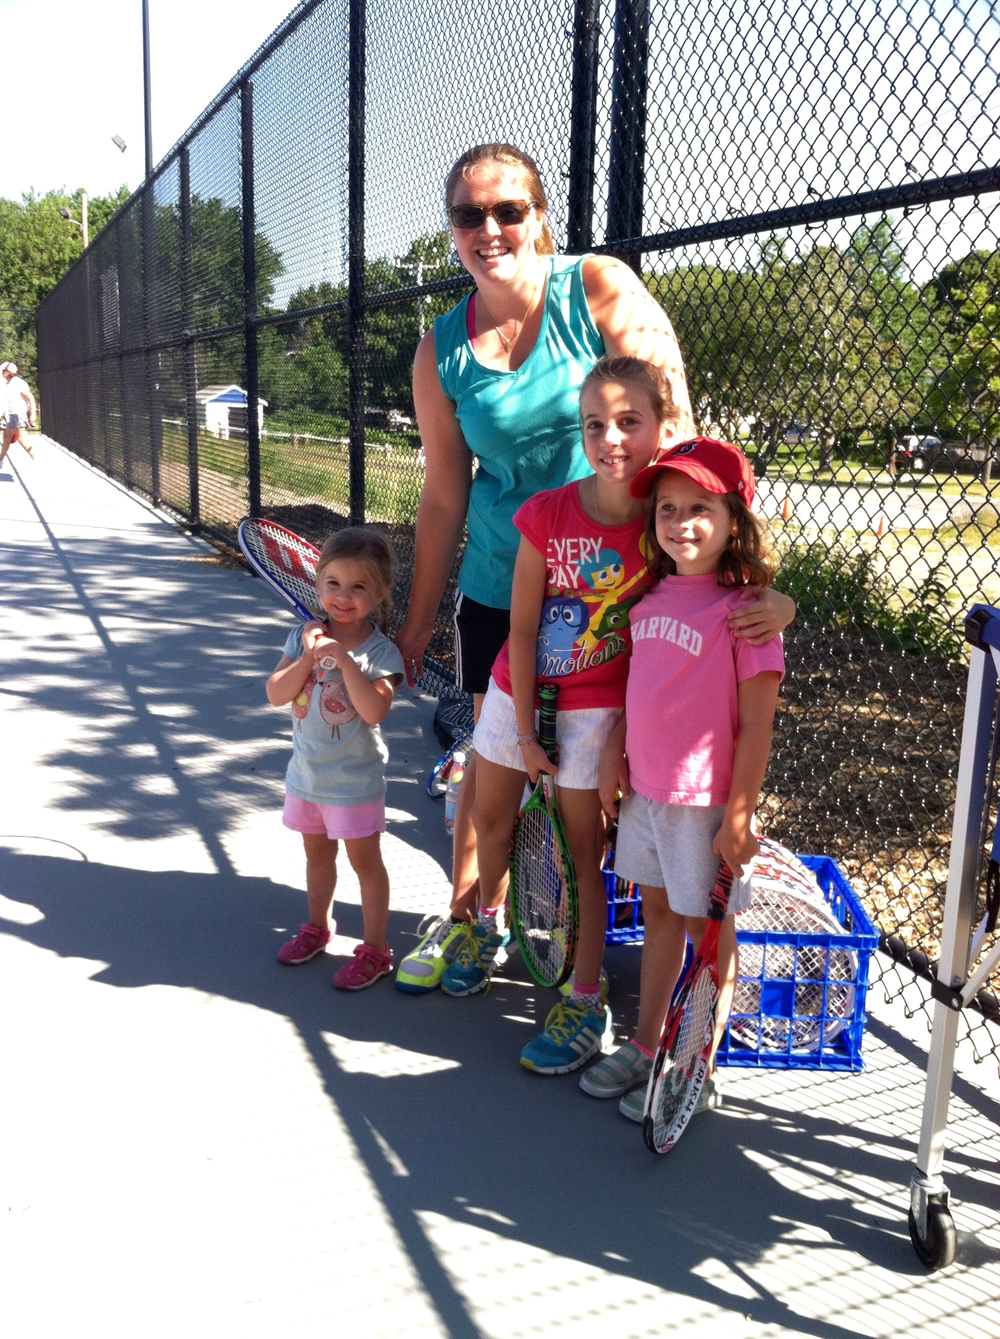 Jessica, Ryan, Sarah, & Erin enjoying tennis lessons at Peter Igo Park